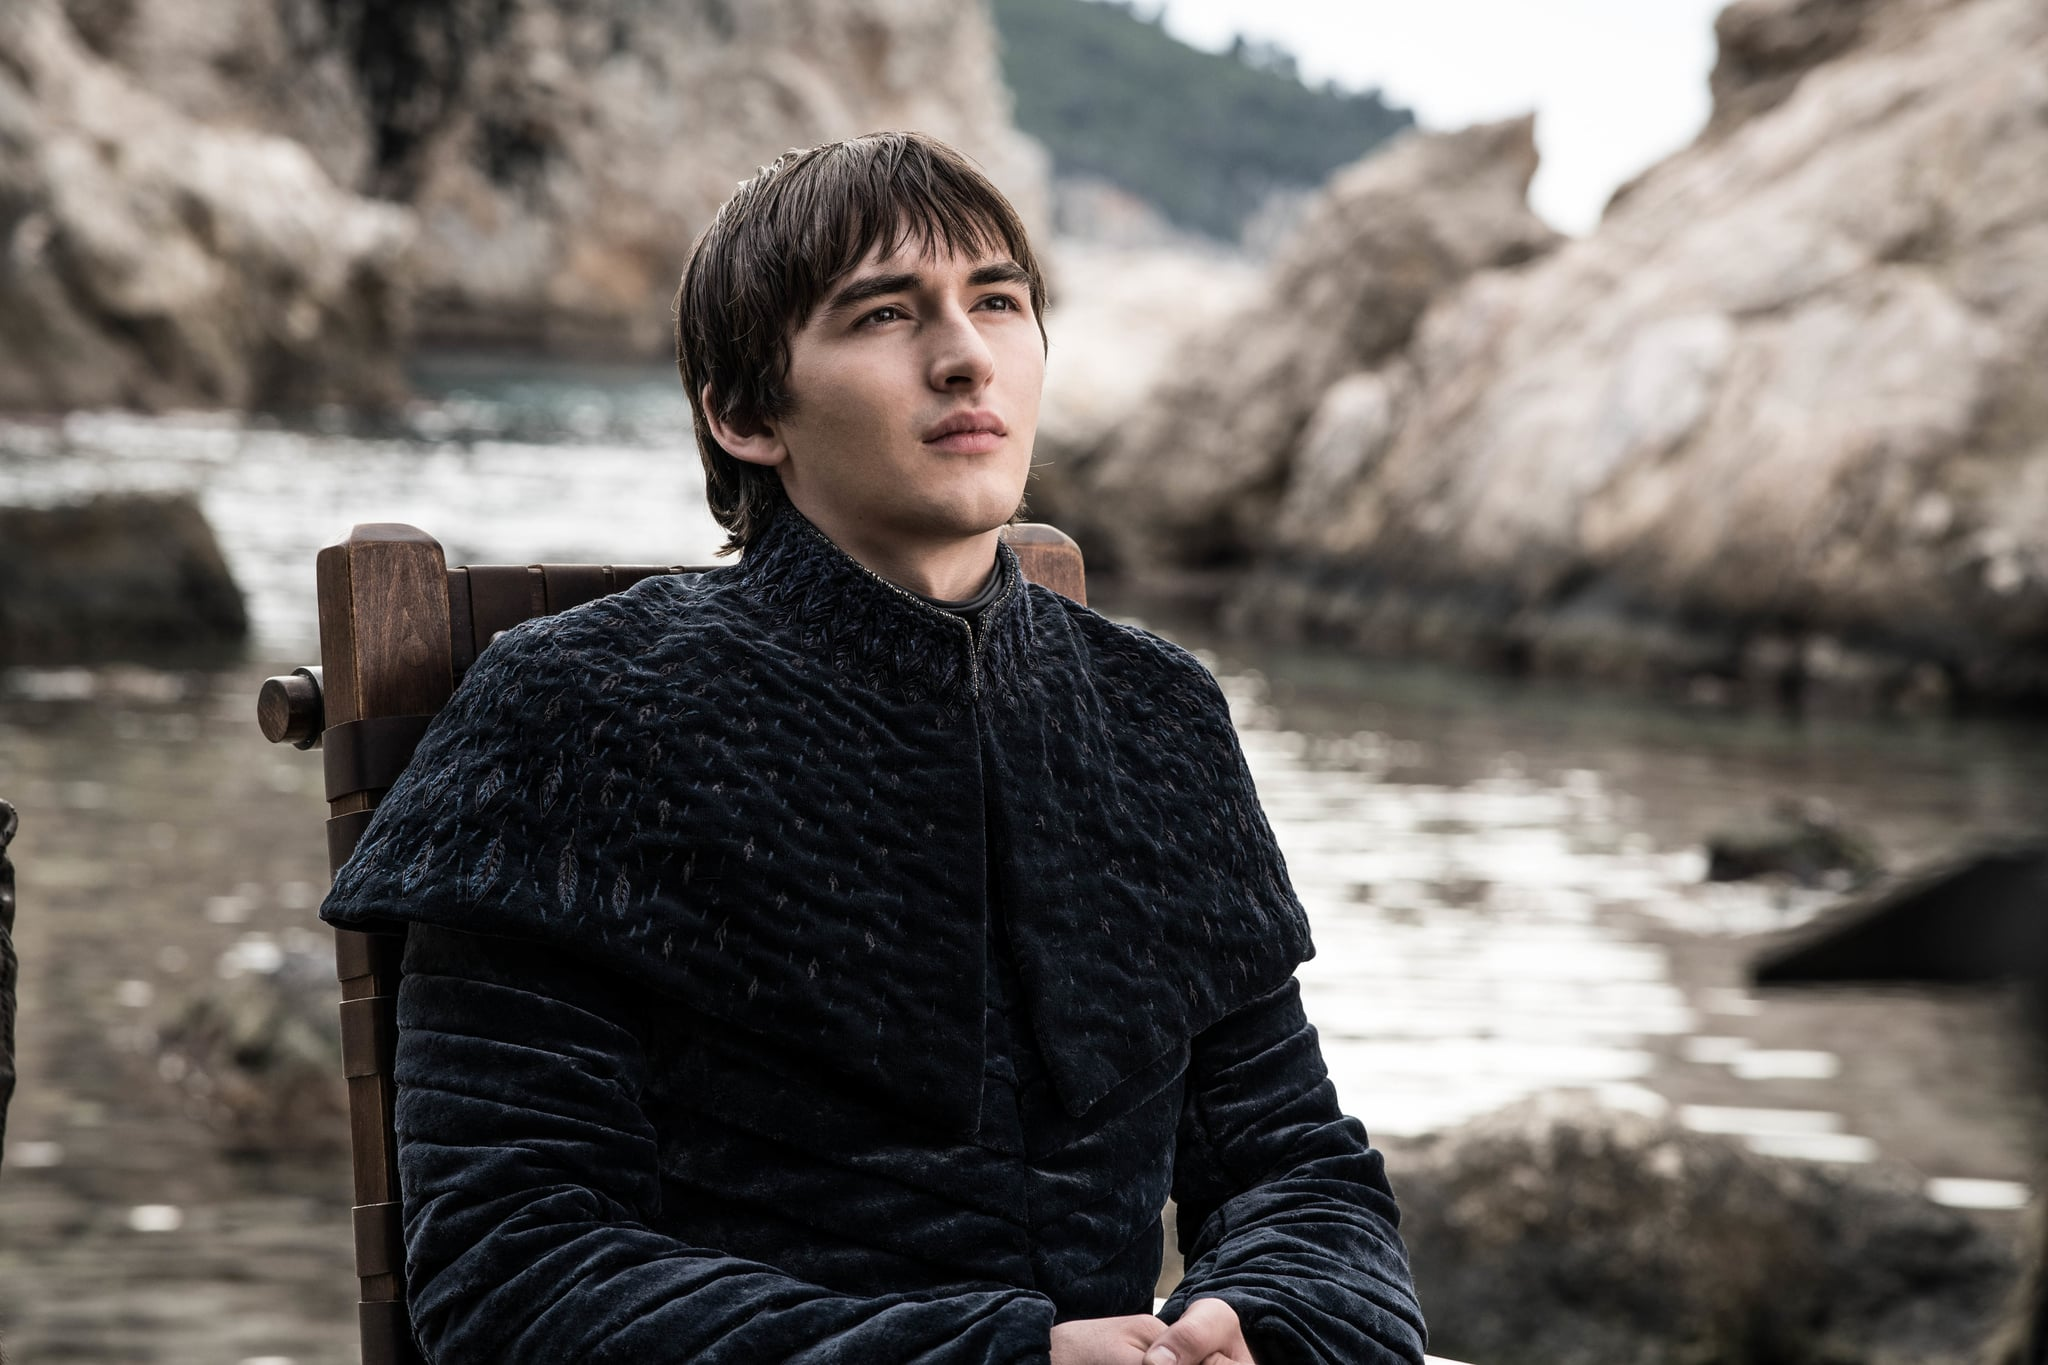 Isaac Hempstead-Wright Quotes On The Game Of Thrones